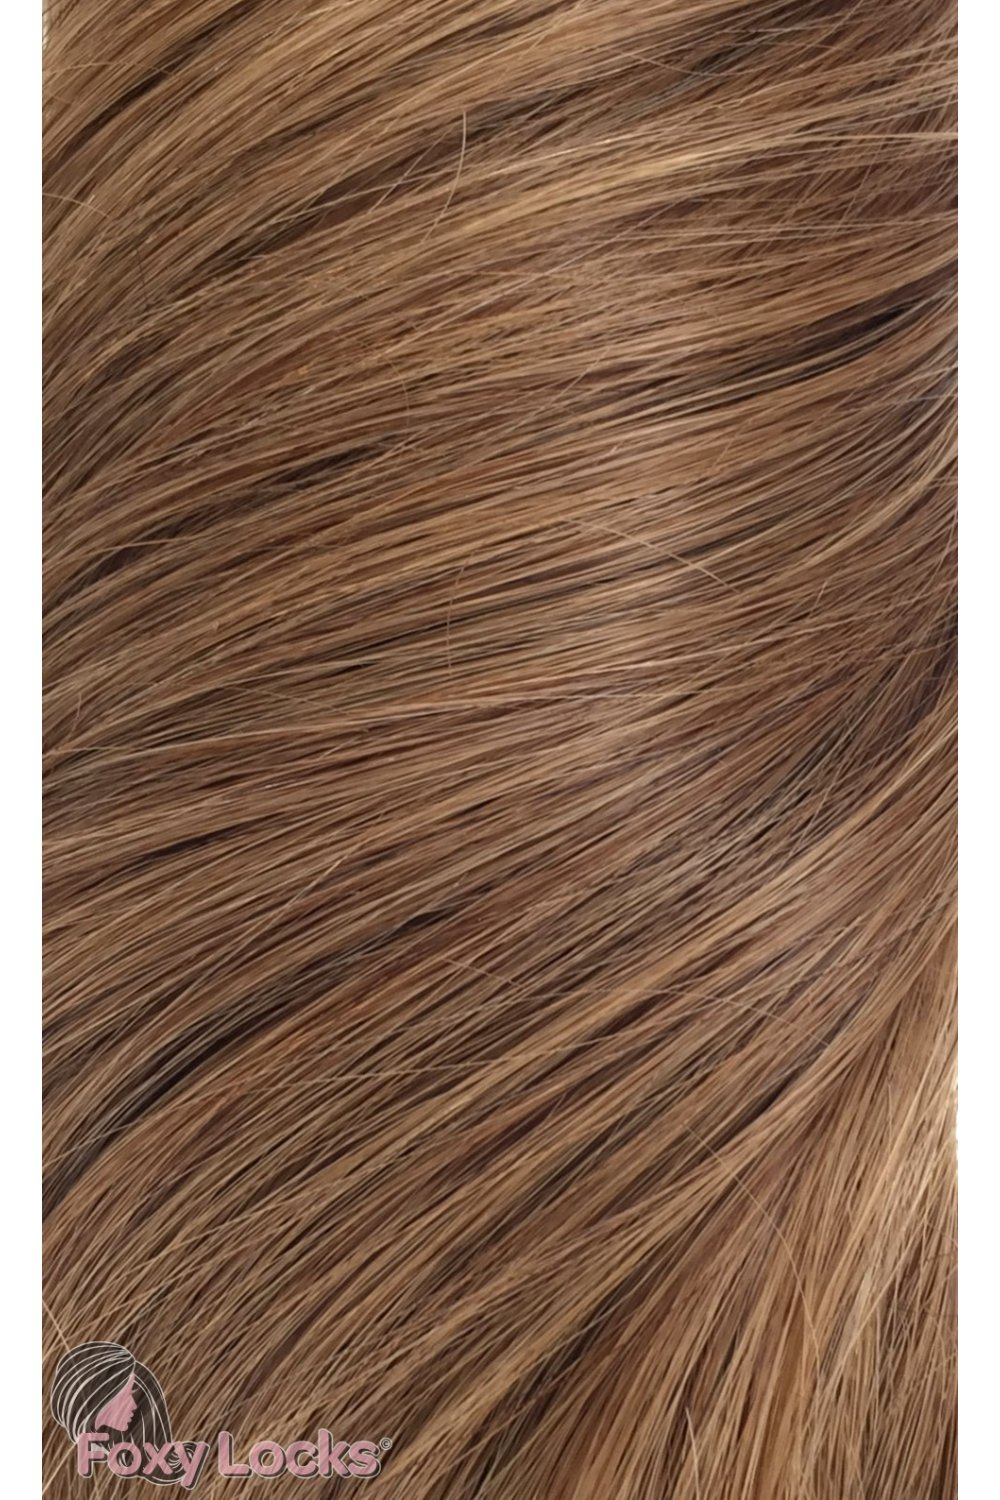 Sunkissed brown 8 luxurious 24 clip in human hair extensions 280g sunkissed brown luxurious 24 clip in human hair extensions pmusecretfo Image collections